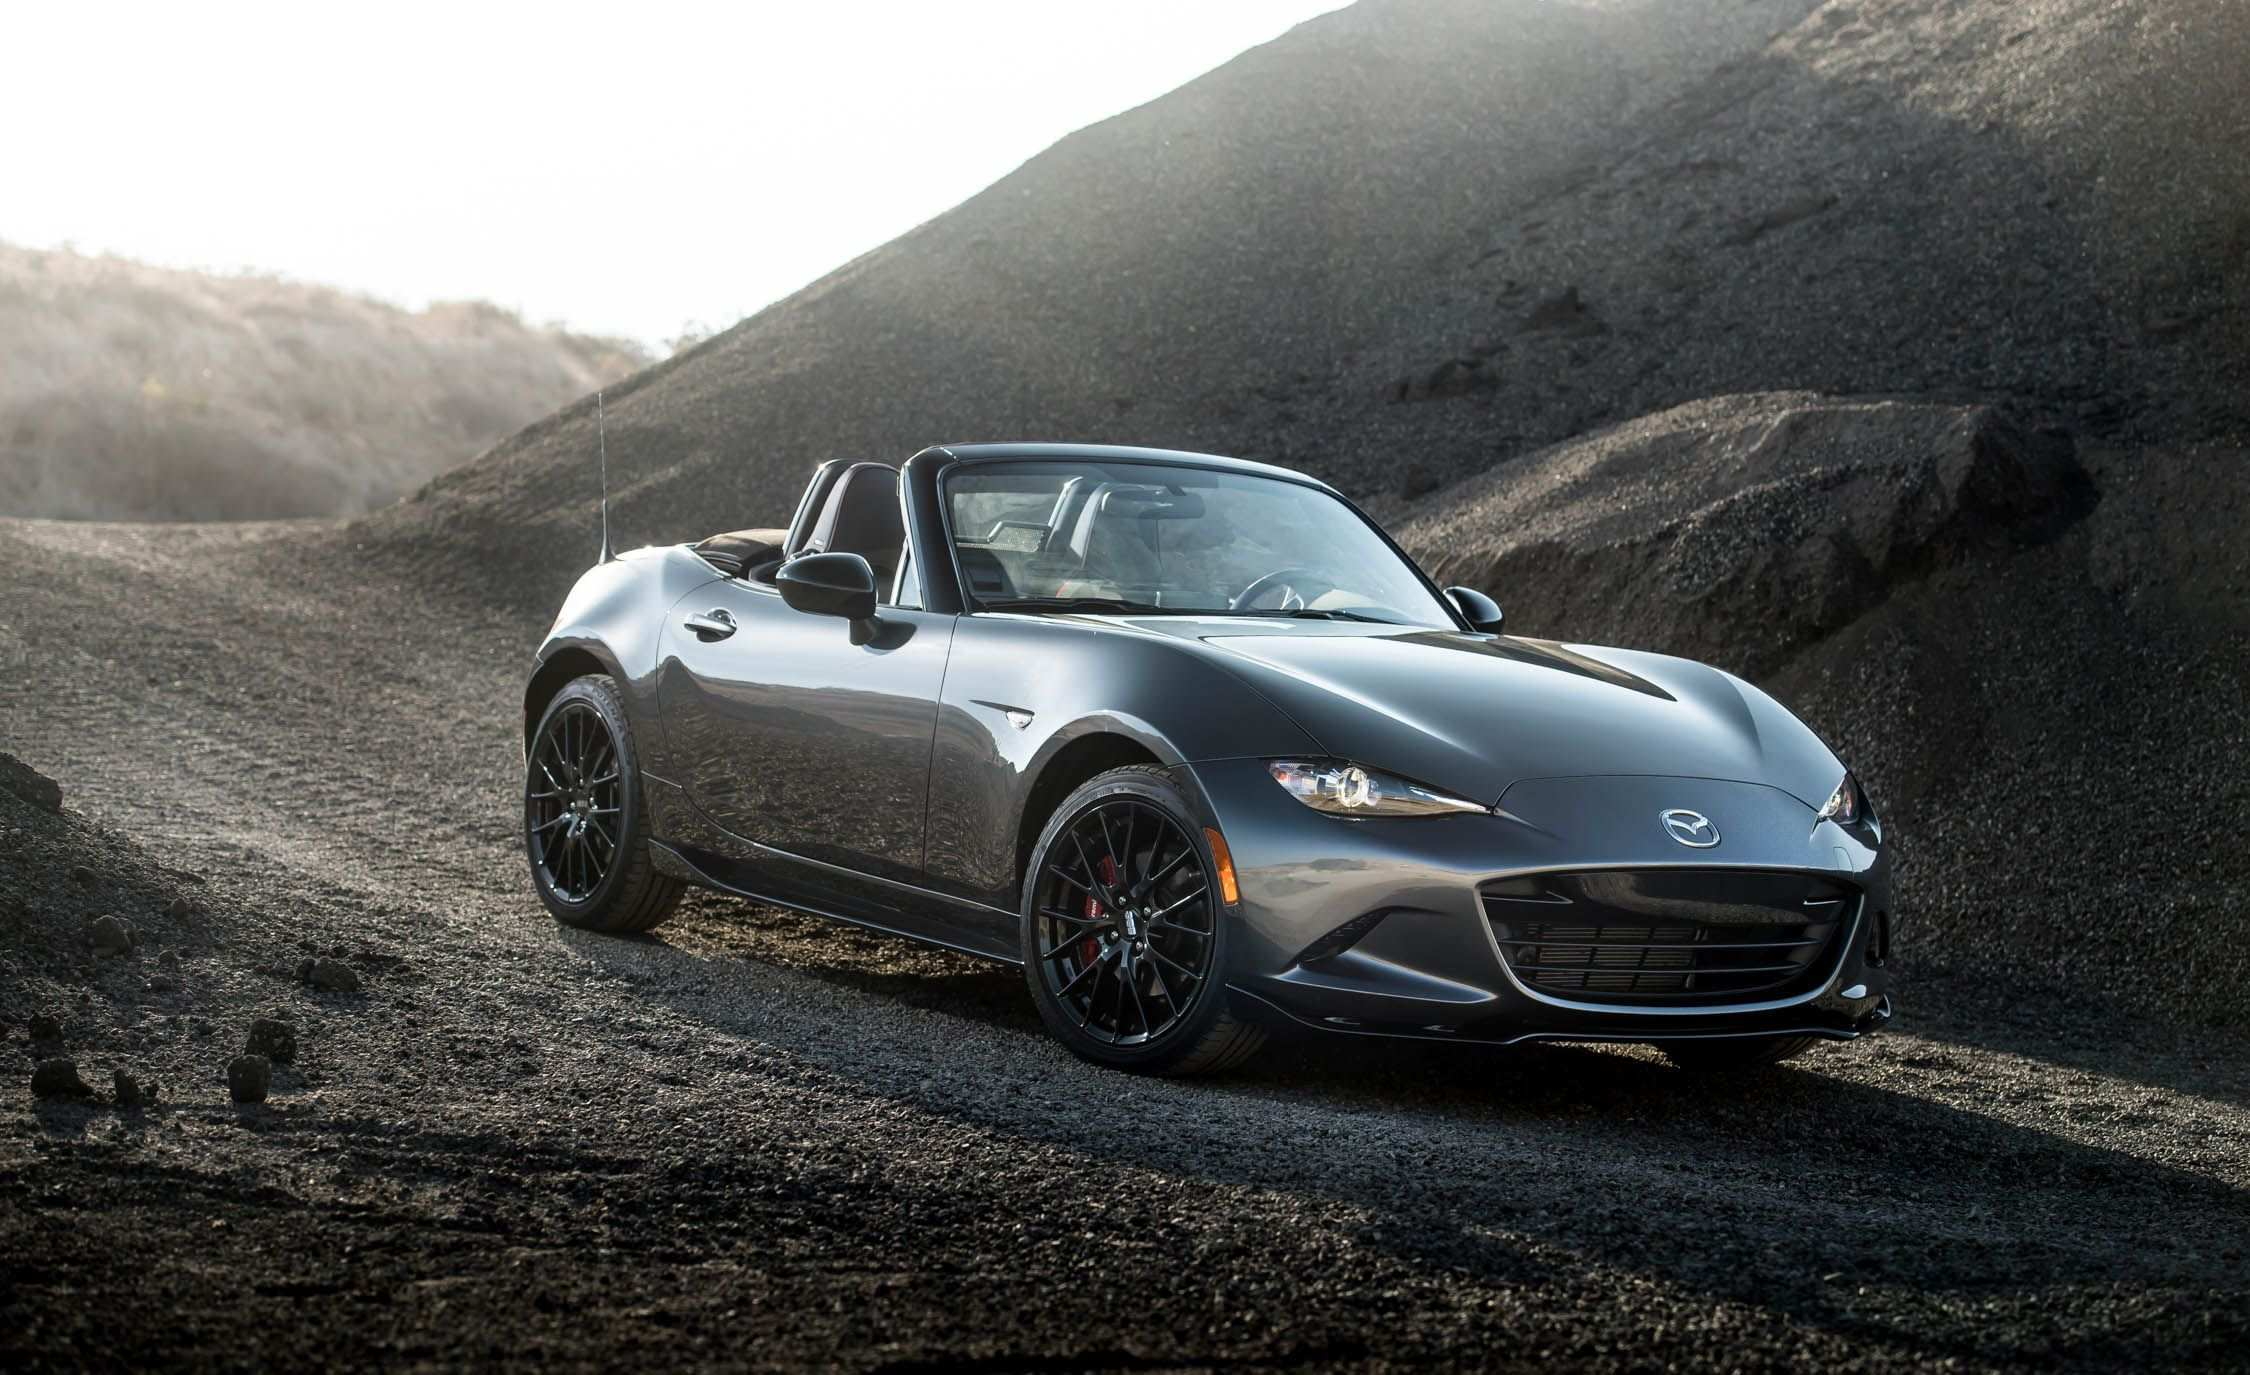 31 New 2019 Mazda MX 5 Miata Interior